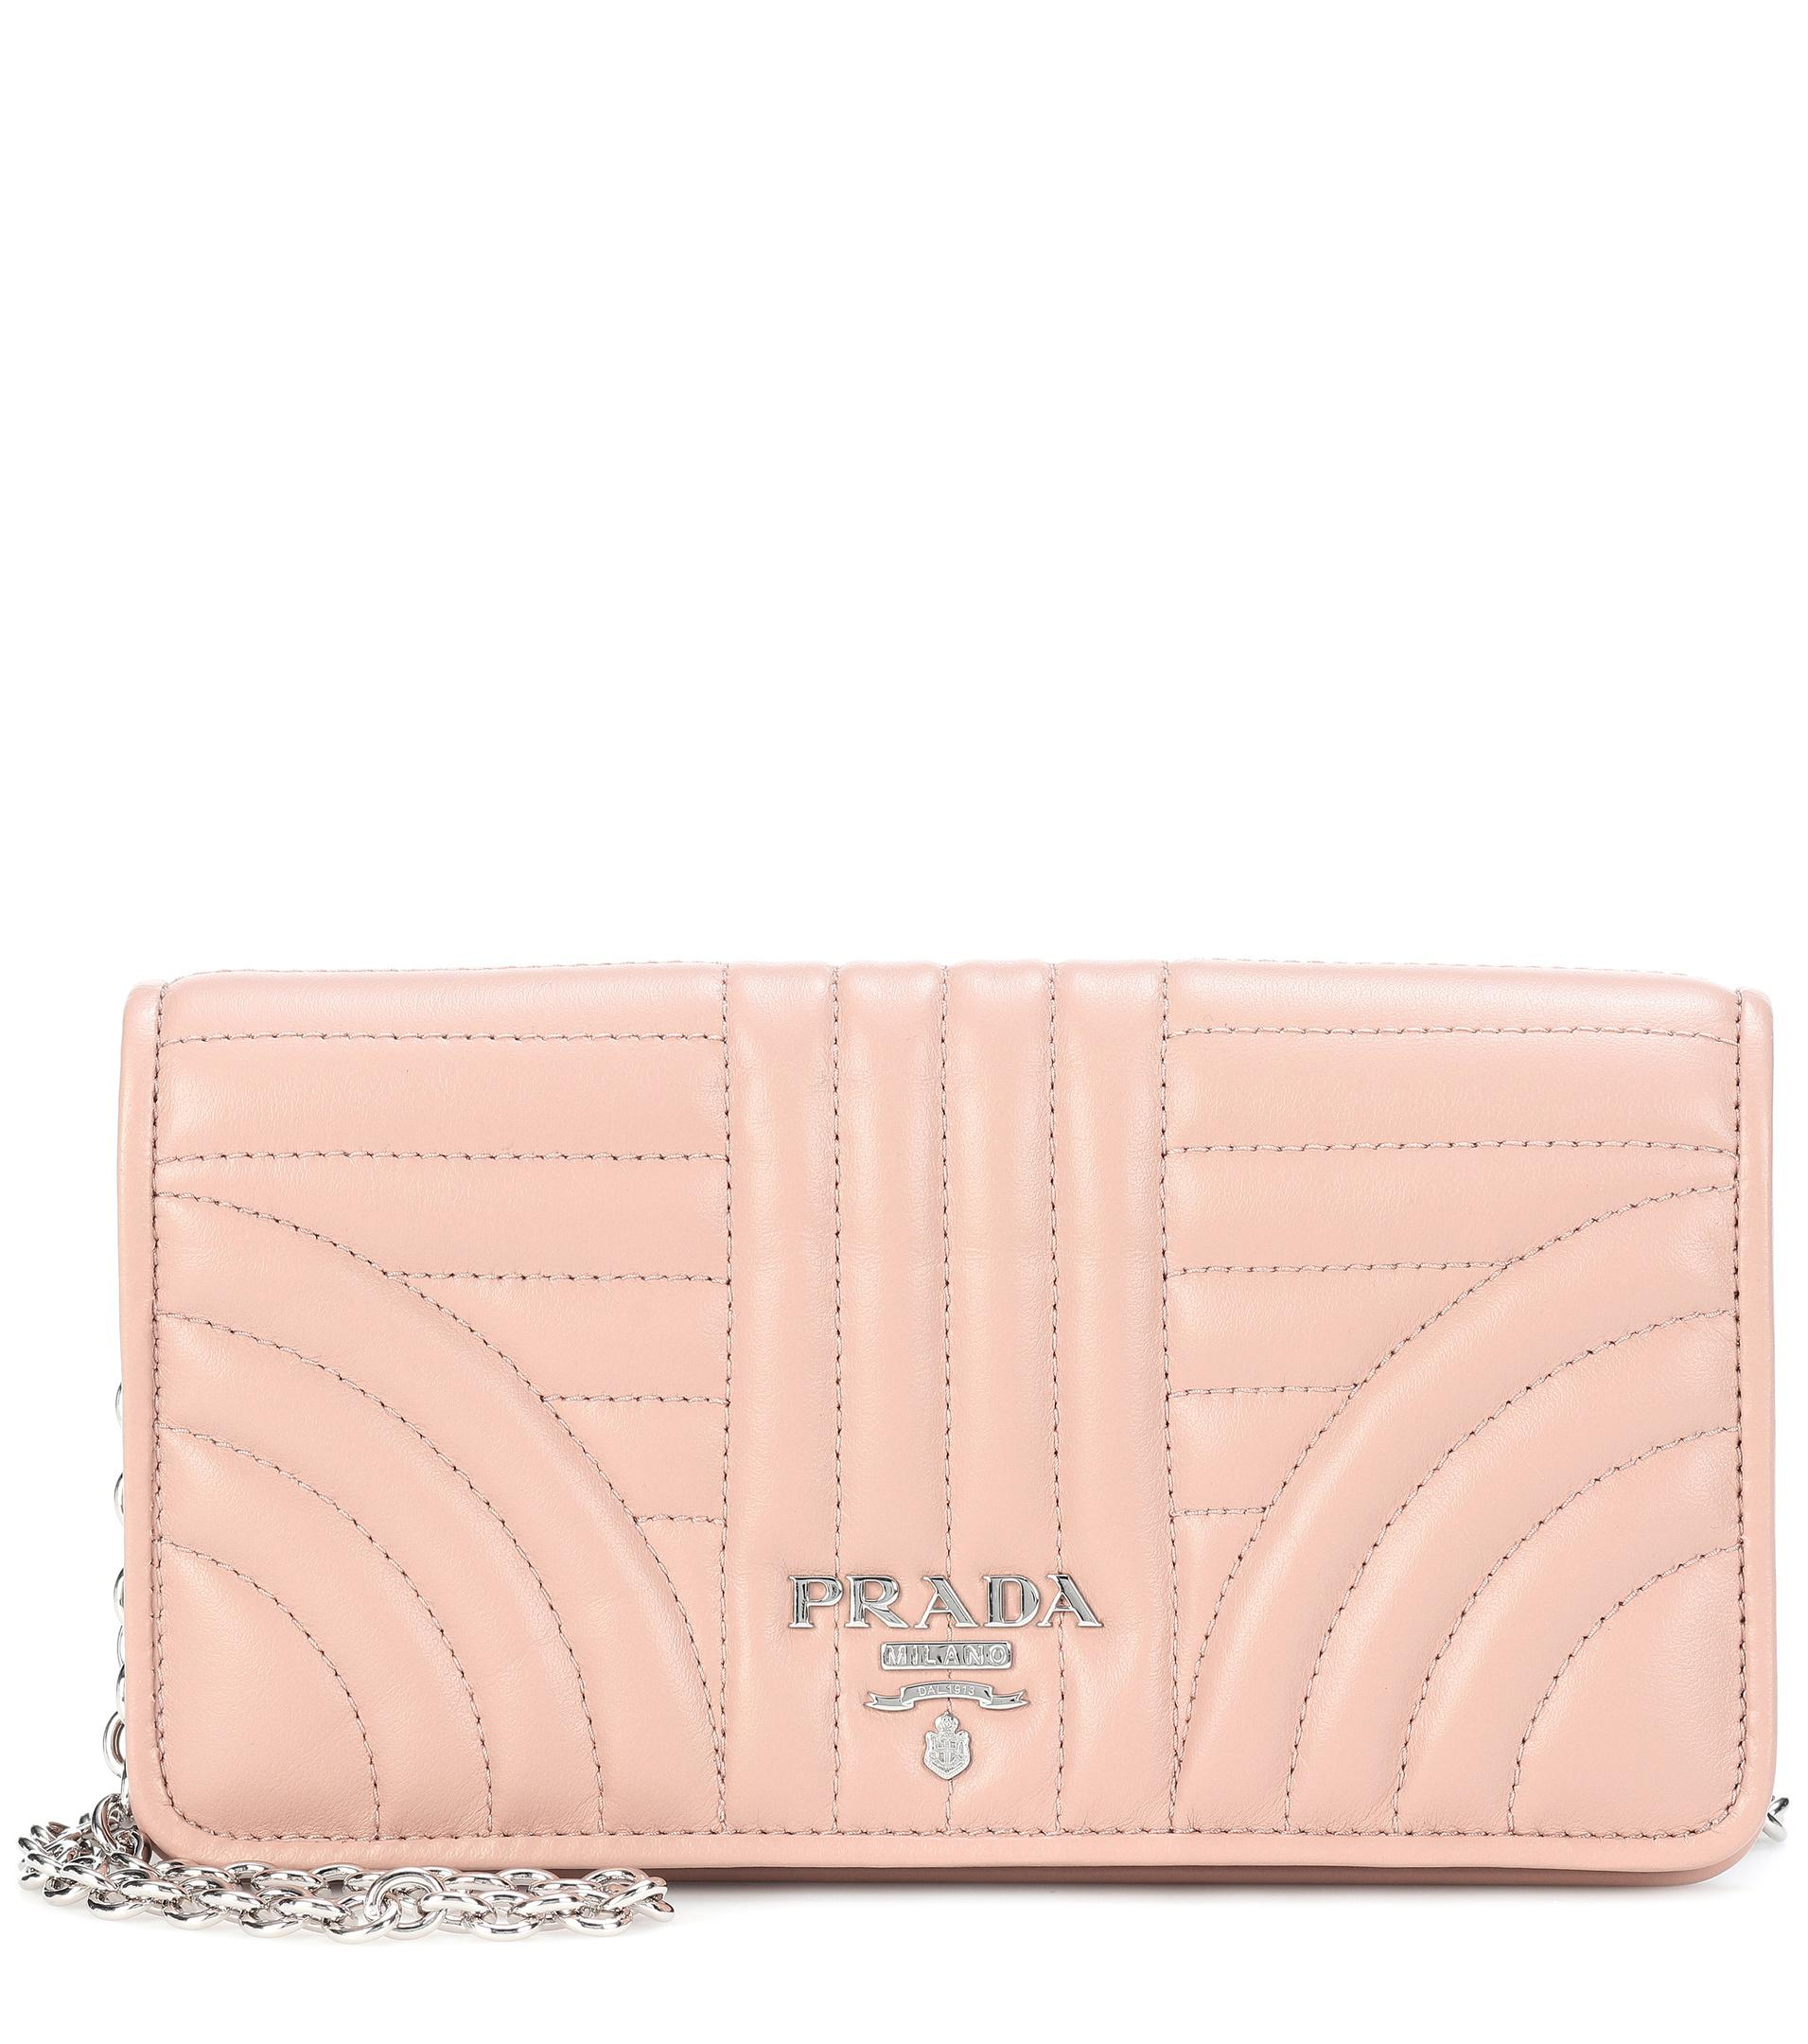 b44bcdadc423 Lyst - Prada Matelassé Leather Shoulder Bag in Pink